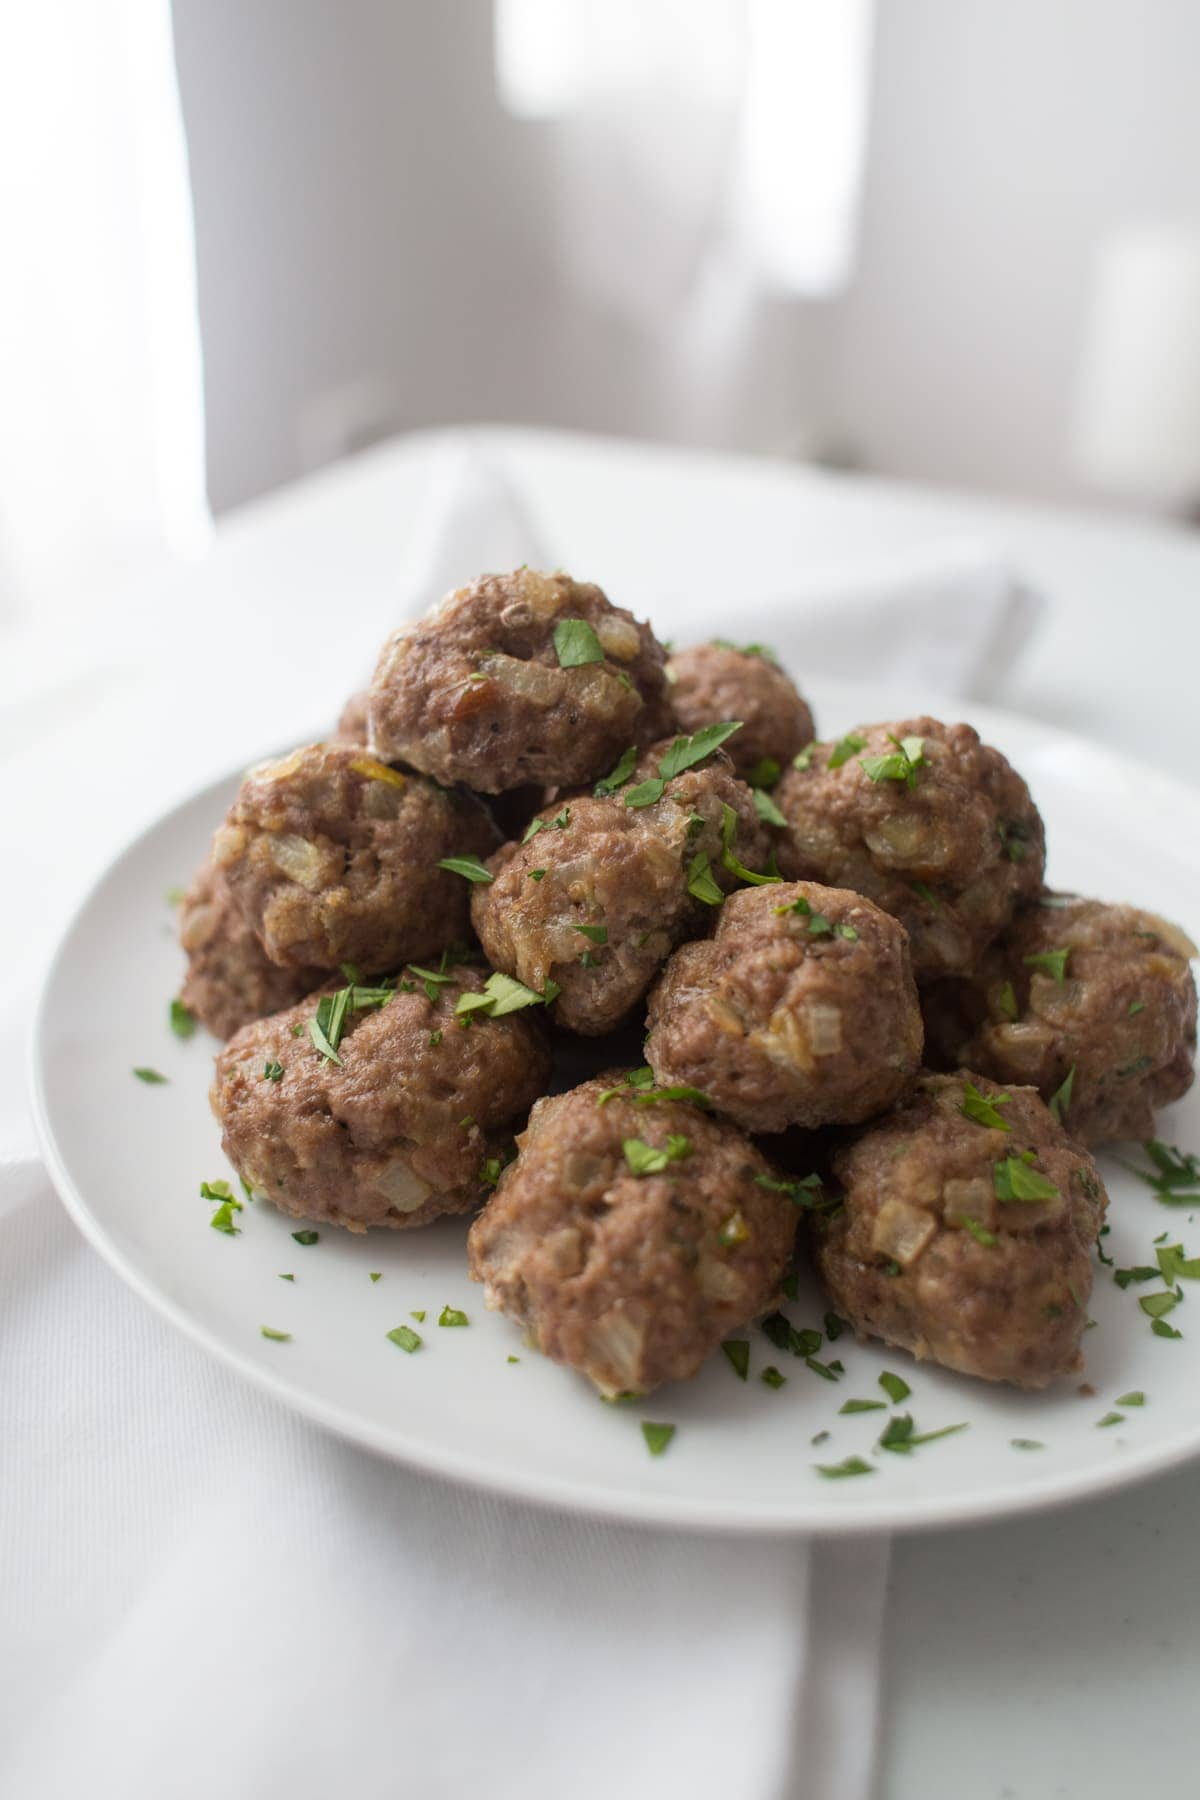 A plate of meatballs